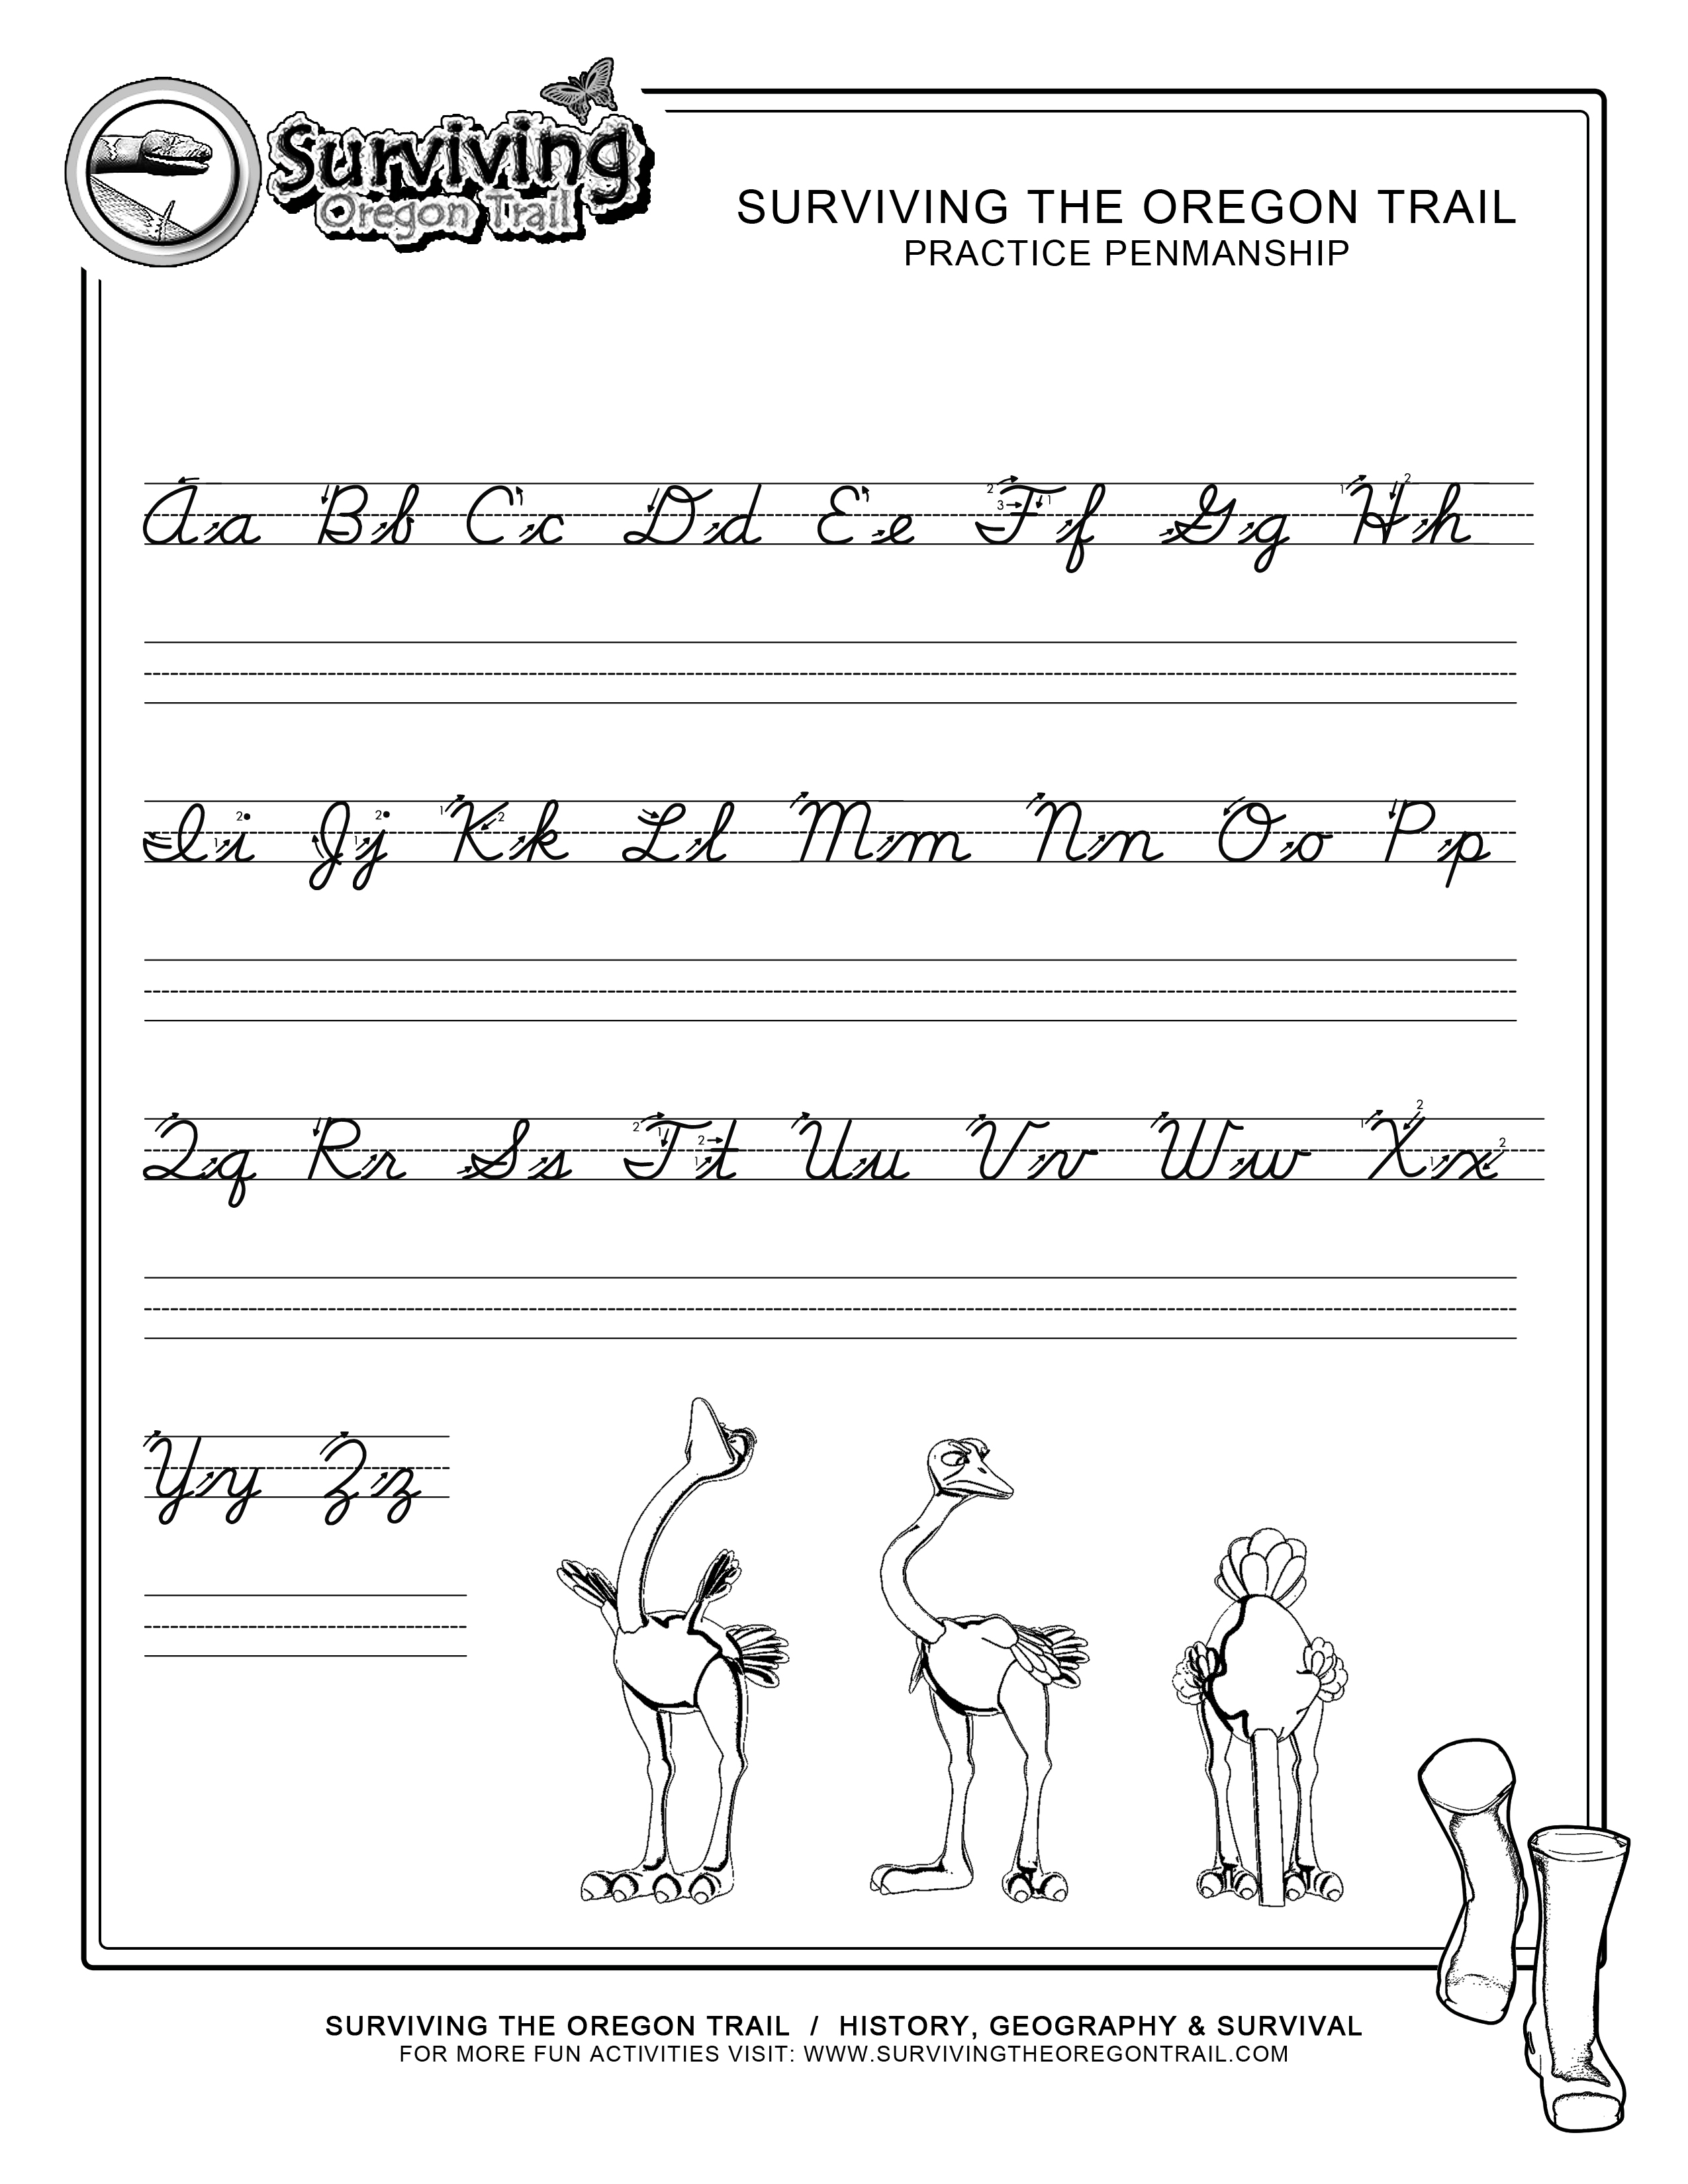 Worksheets How To Write In Cursive Worksheets practice penmanship free abcs printable cursive writing worksheet large print